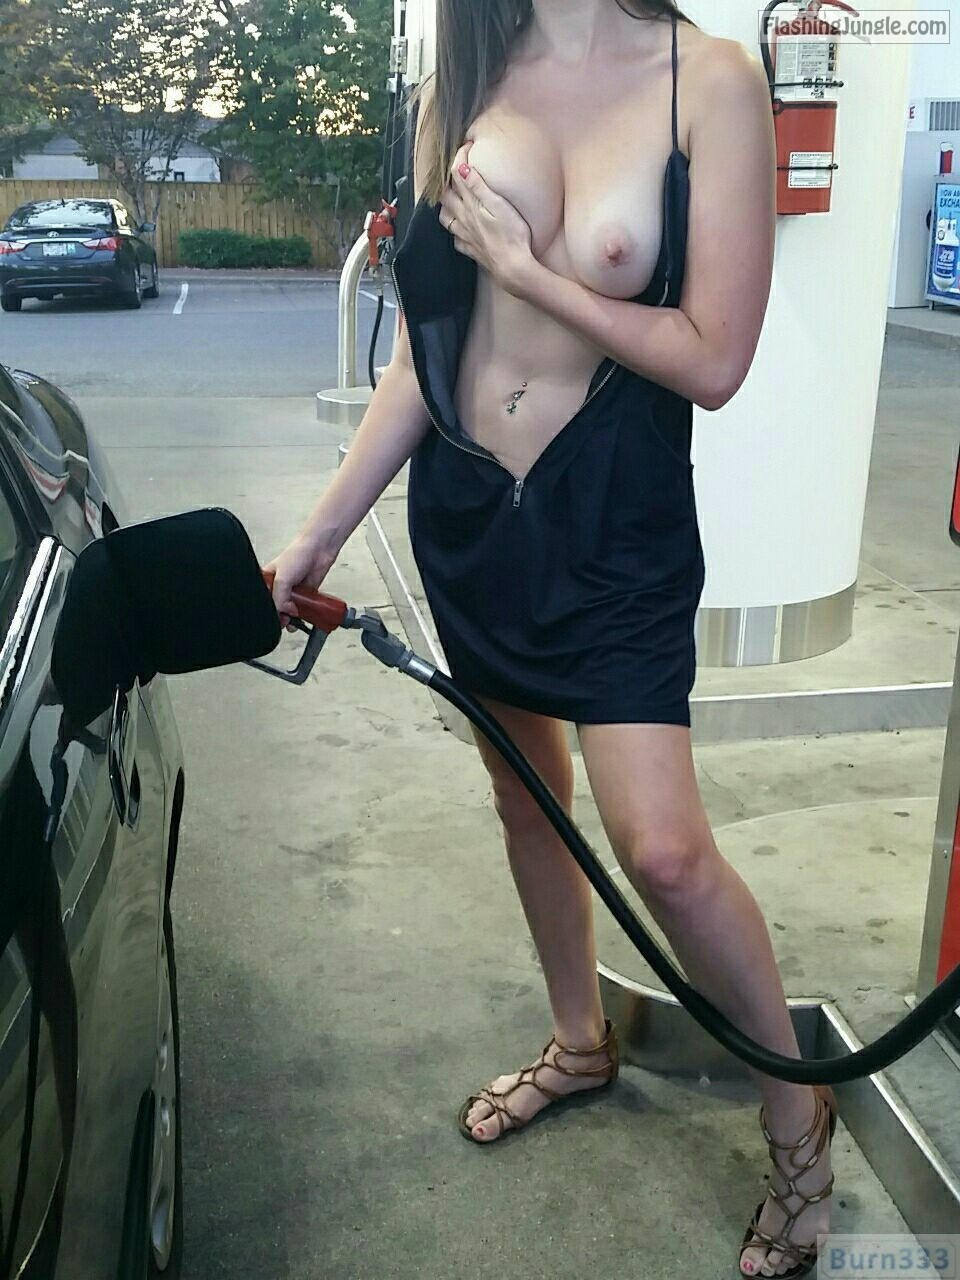 Older Woman Flashing Pussy Tits Gas Station Nude Girls Pictures